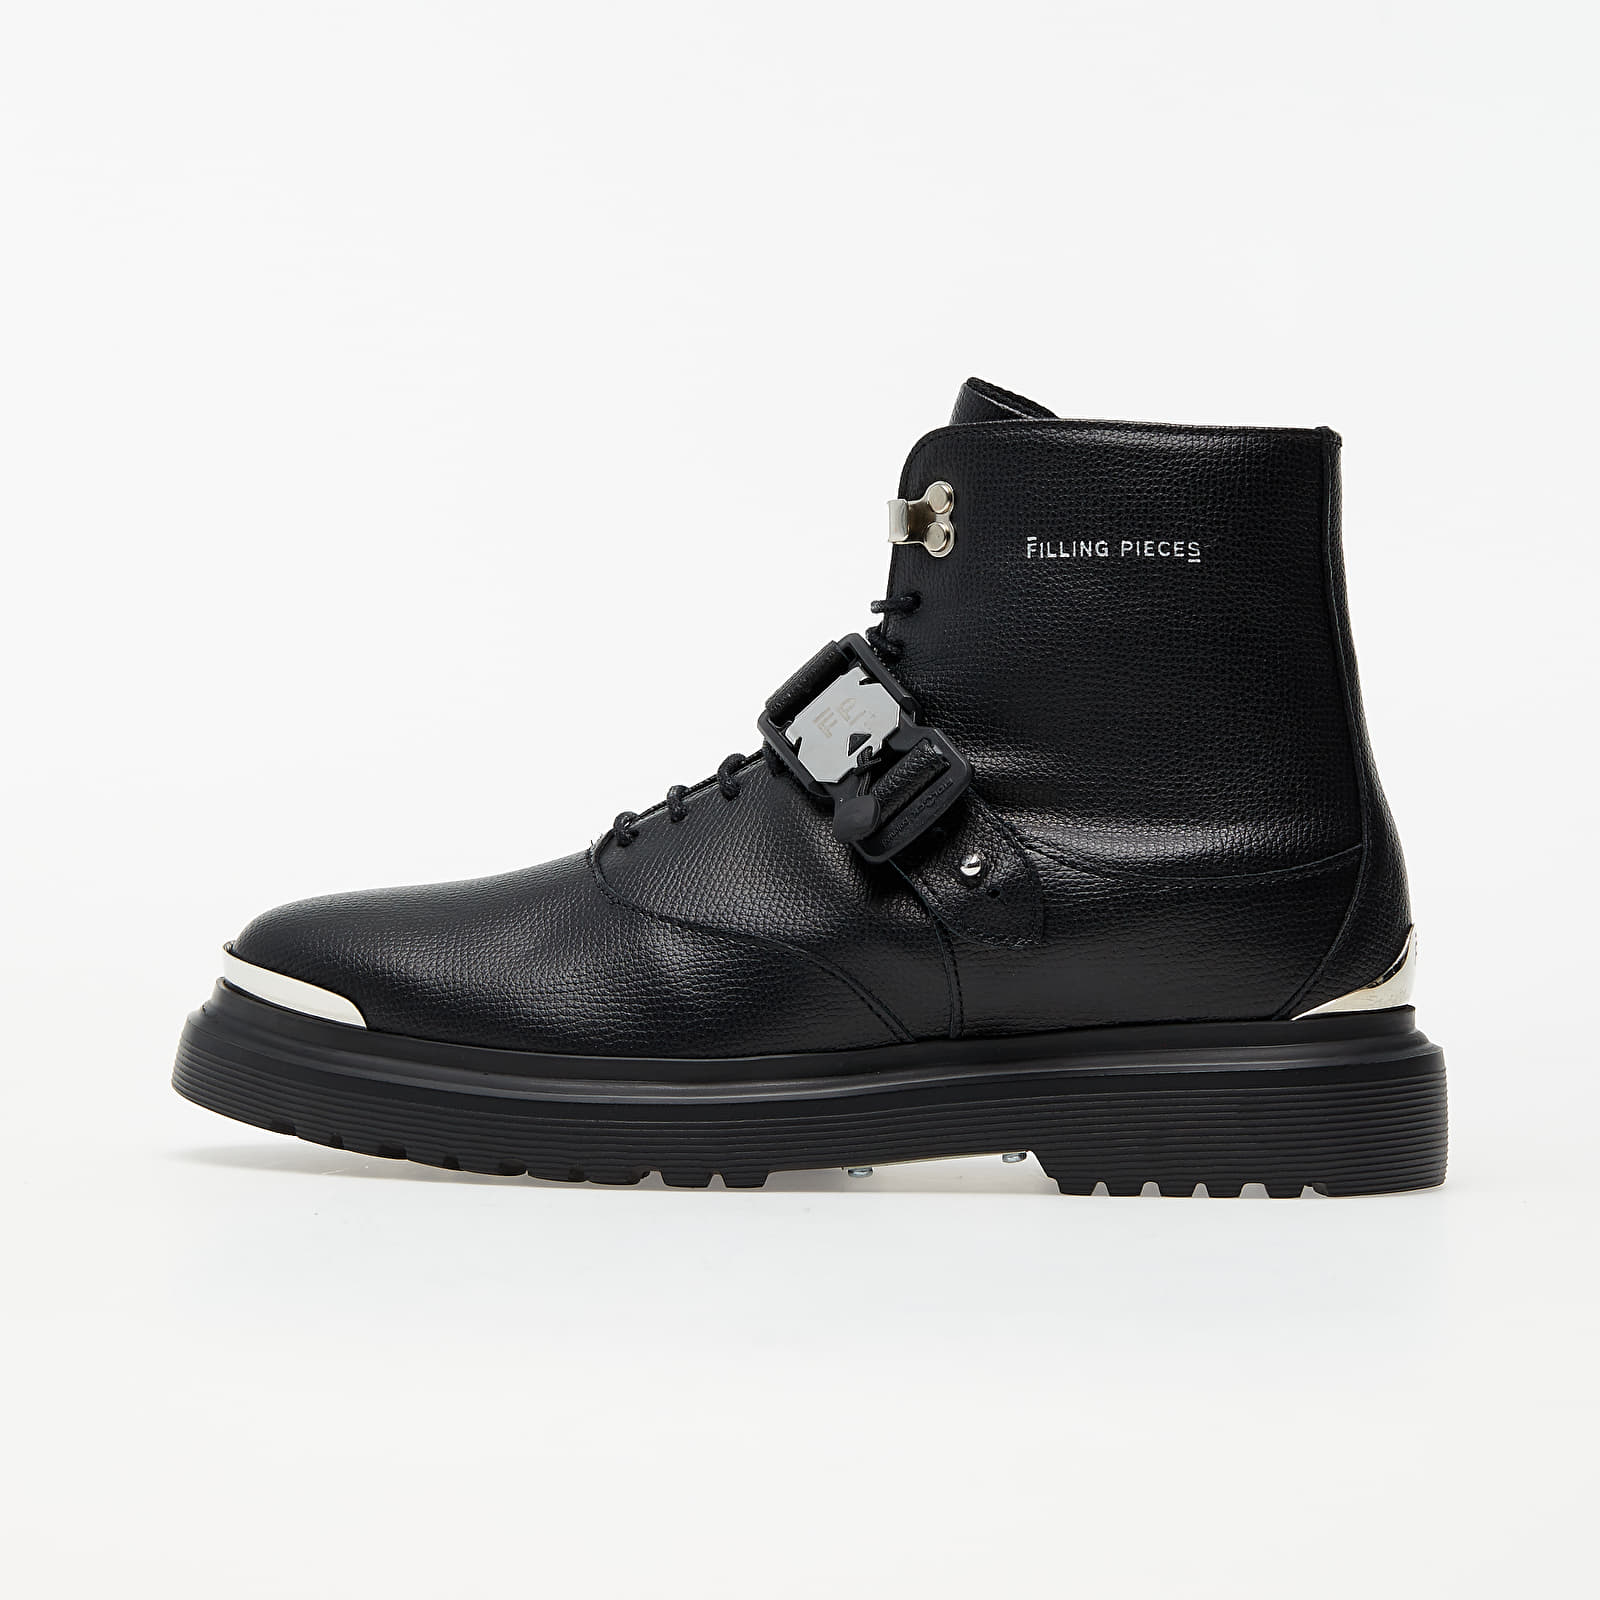 Filling Pieces Waspy Dress Up Boot Black 456287118610